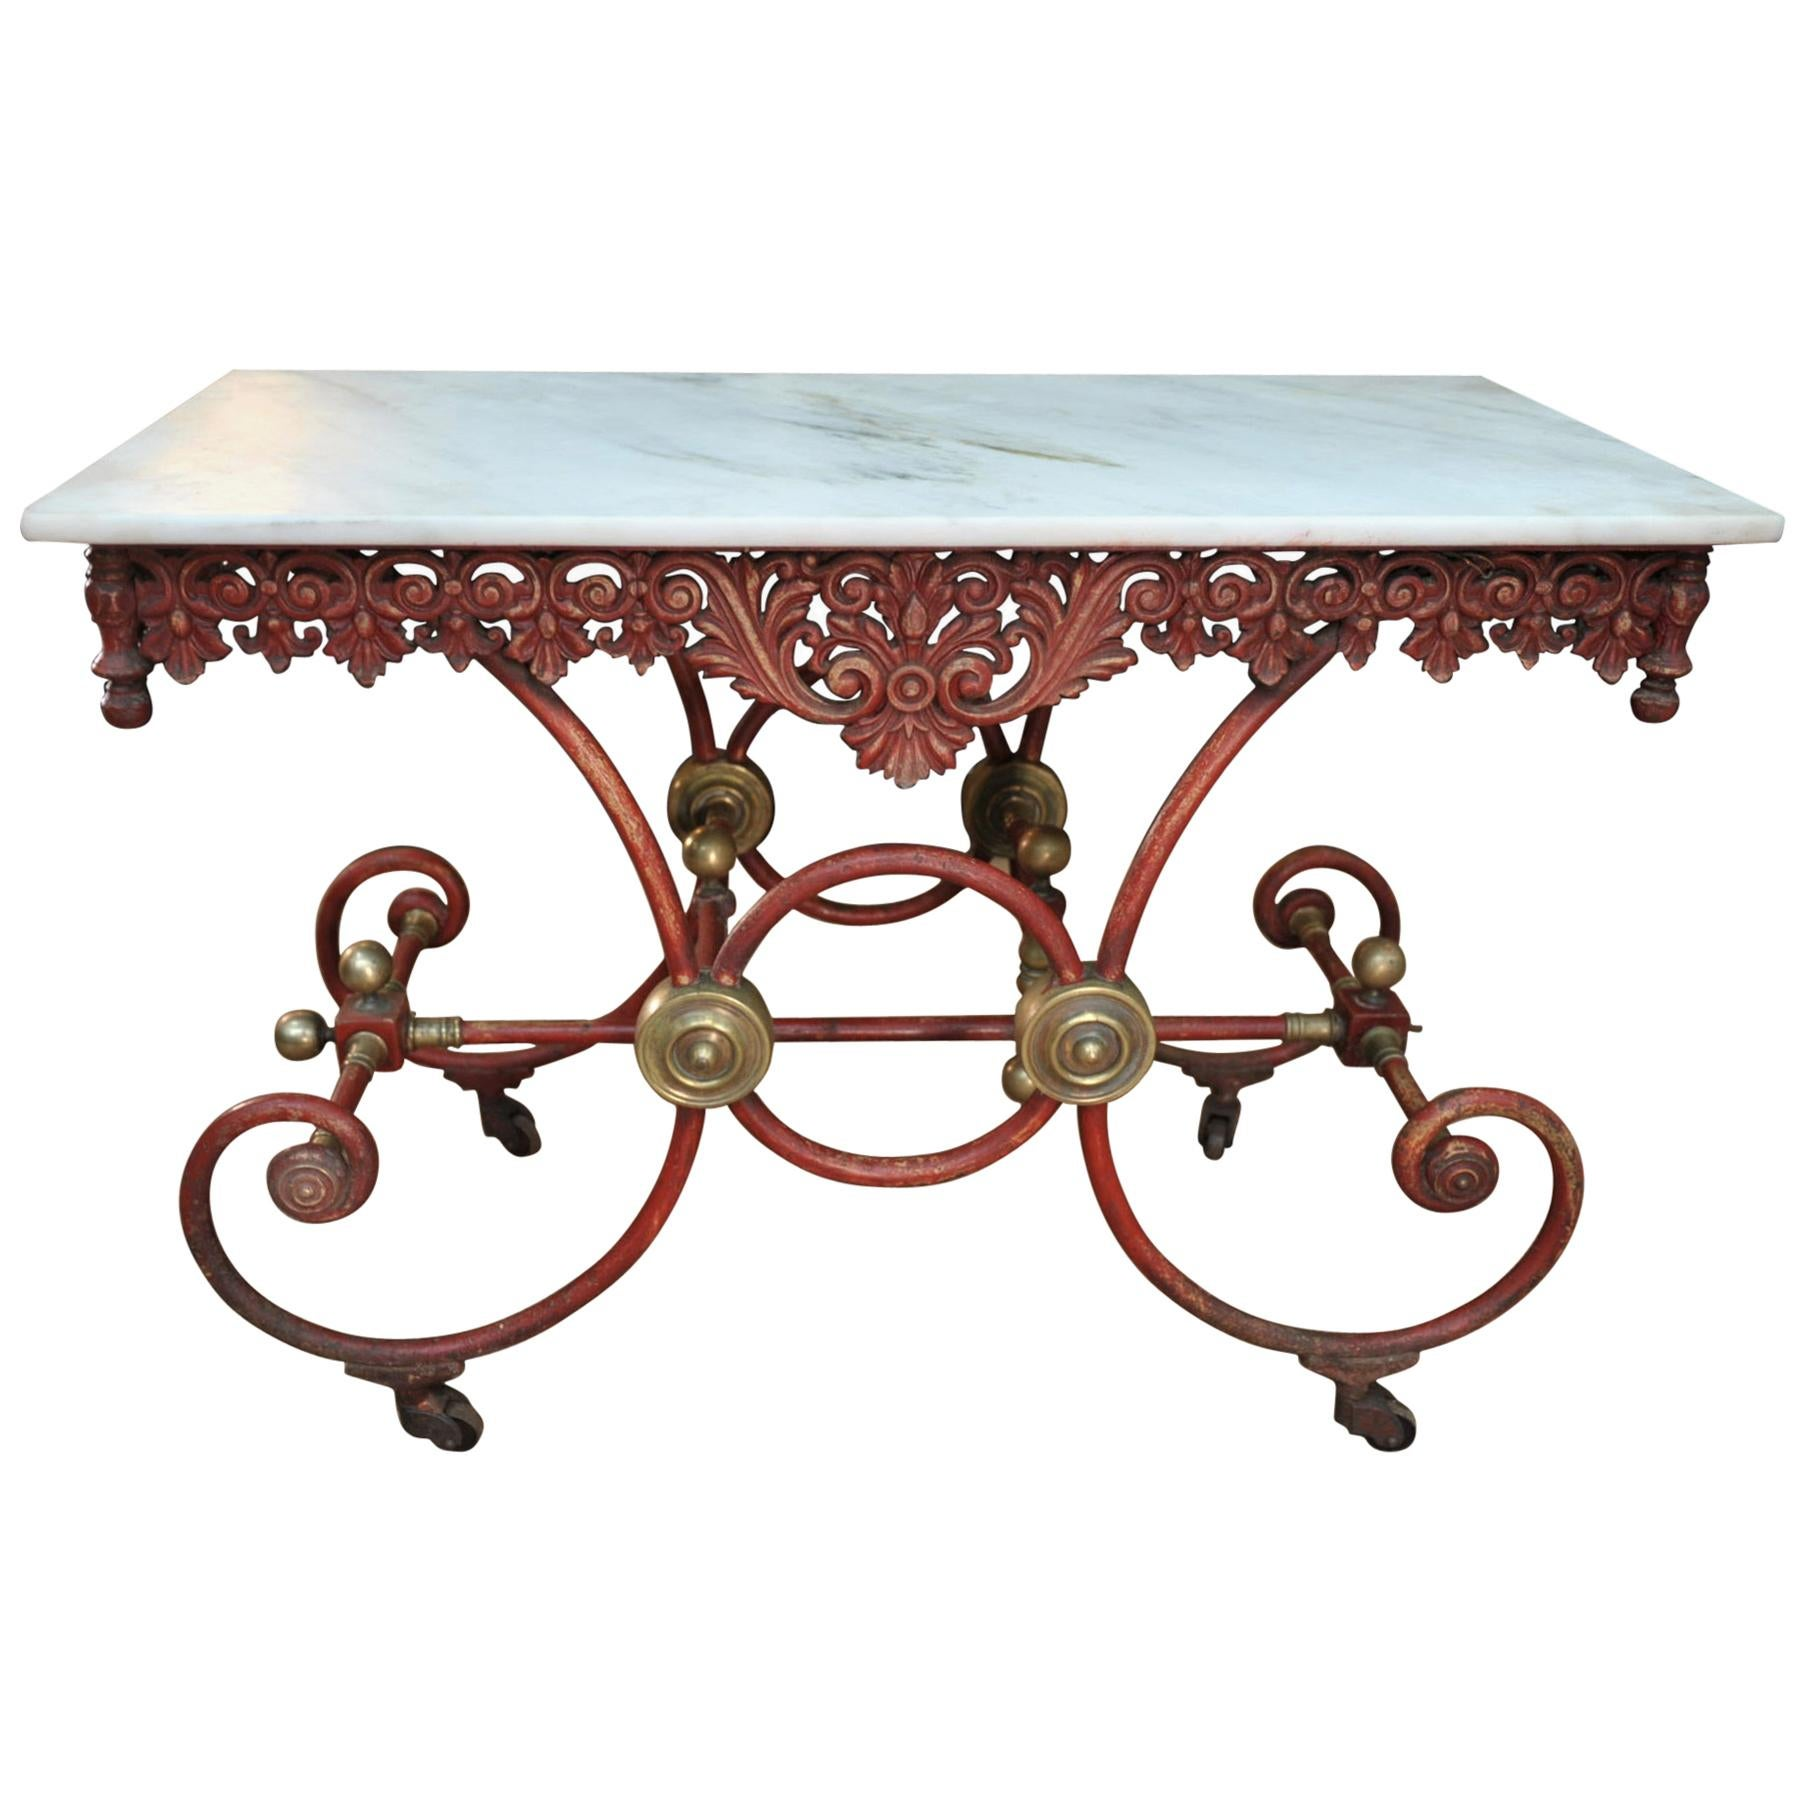 Bronze Iron and Marble Butcher's Table circa 1900